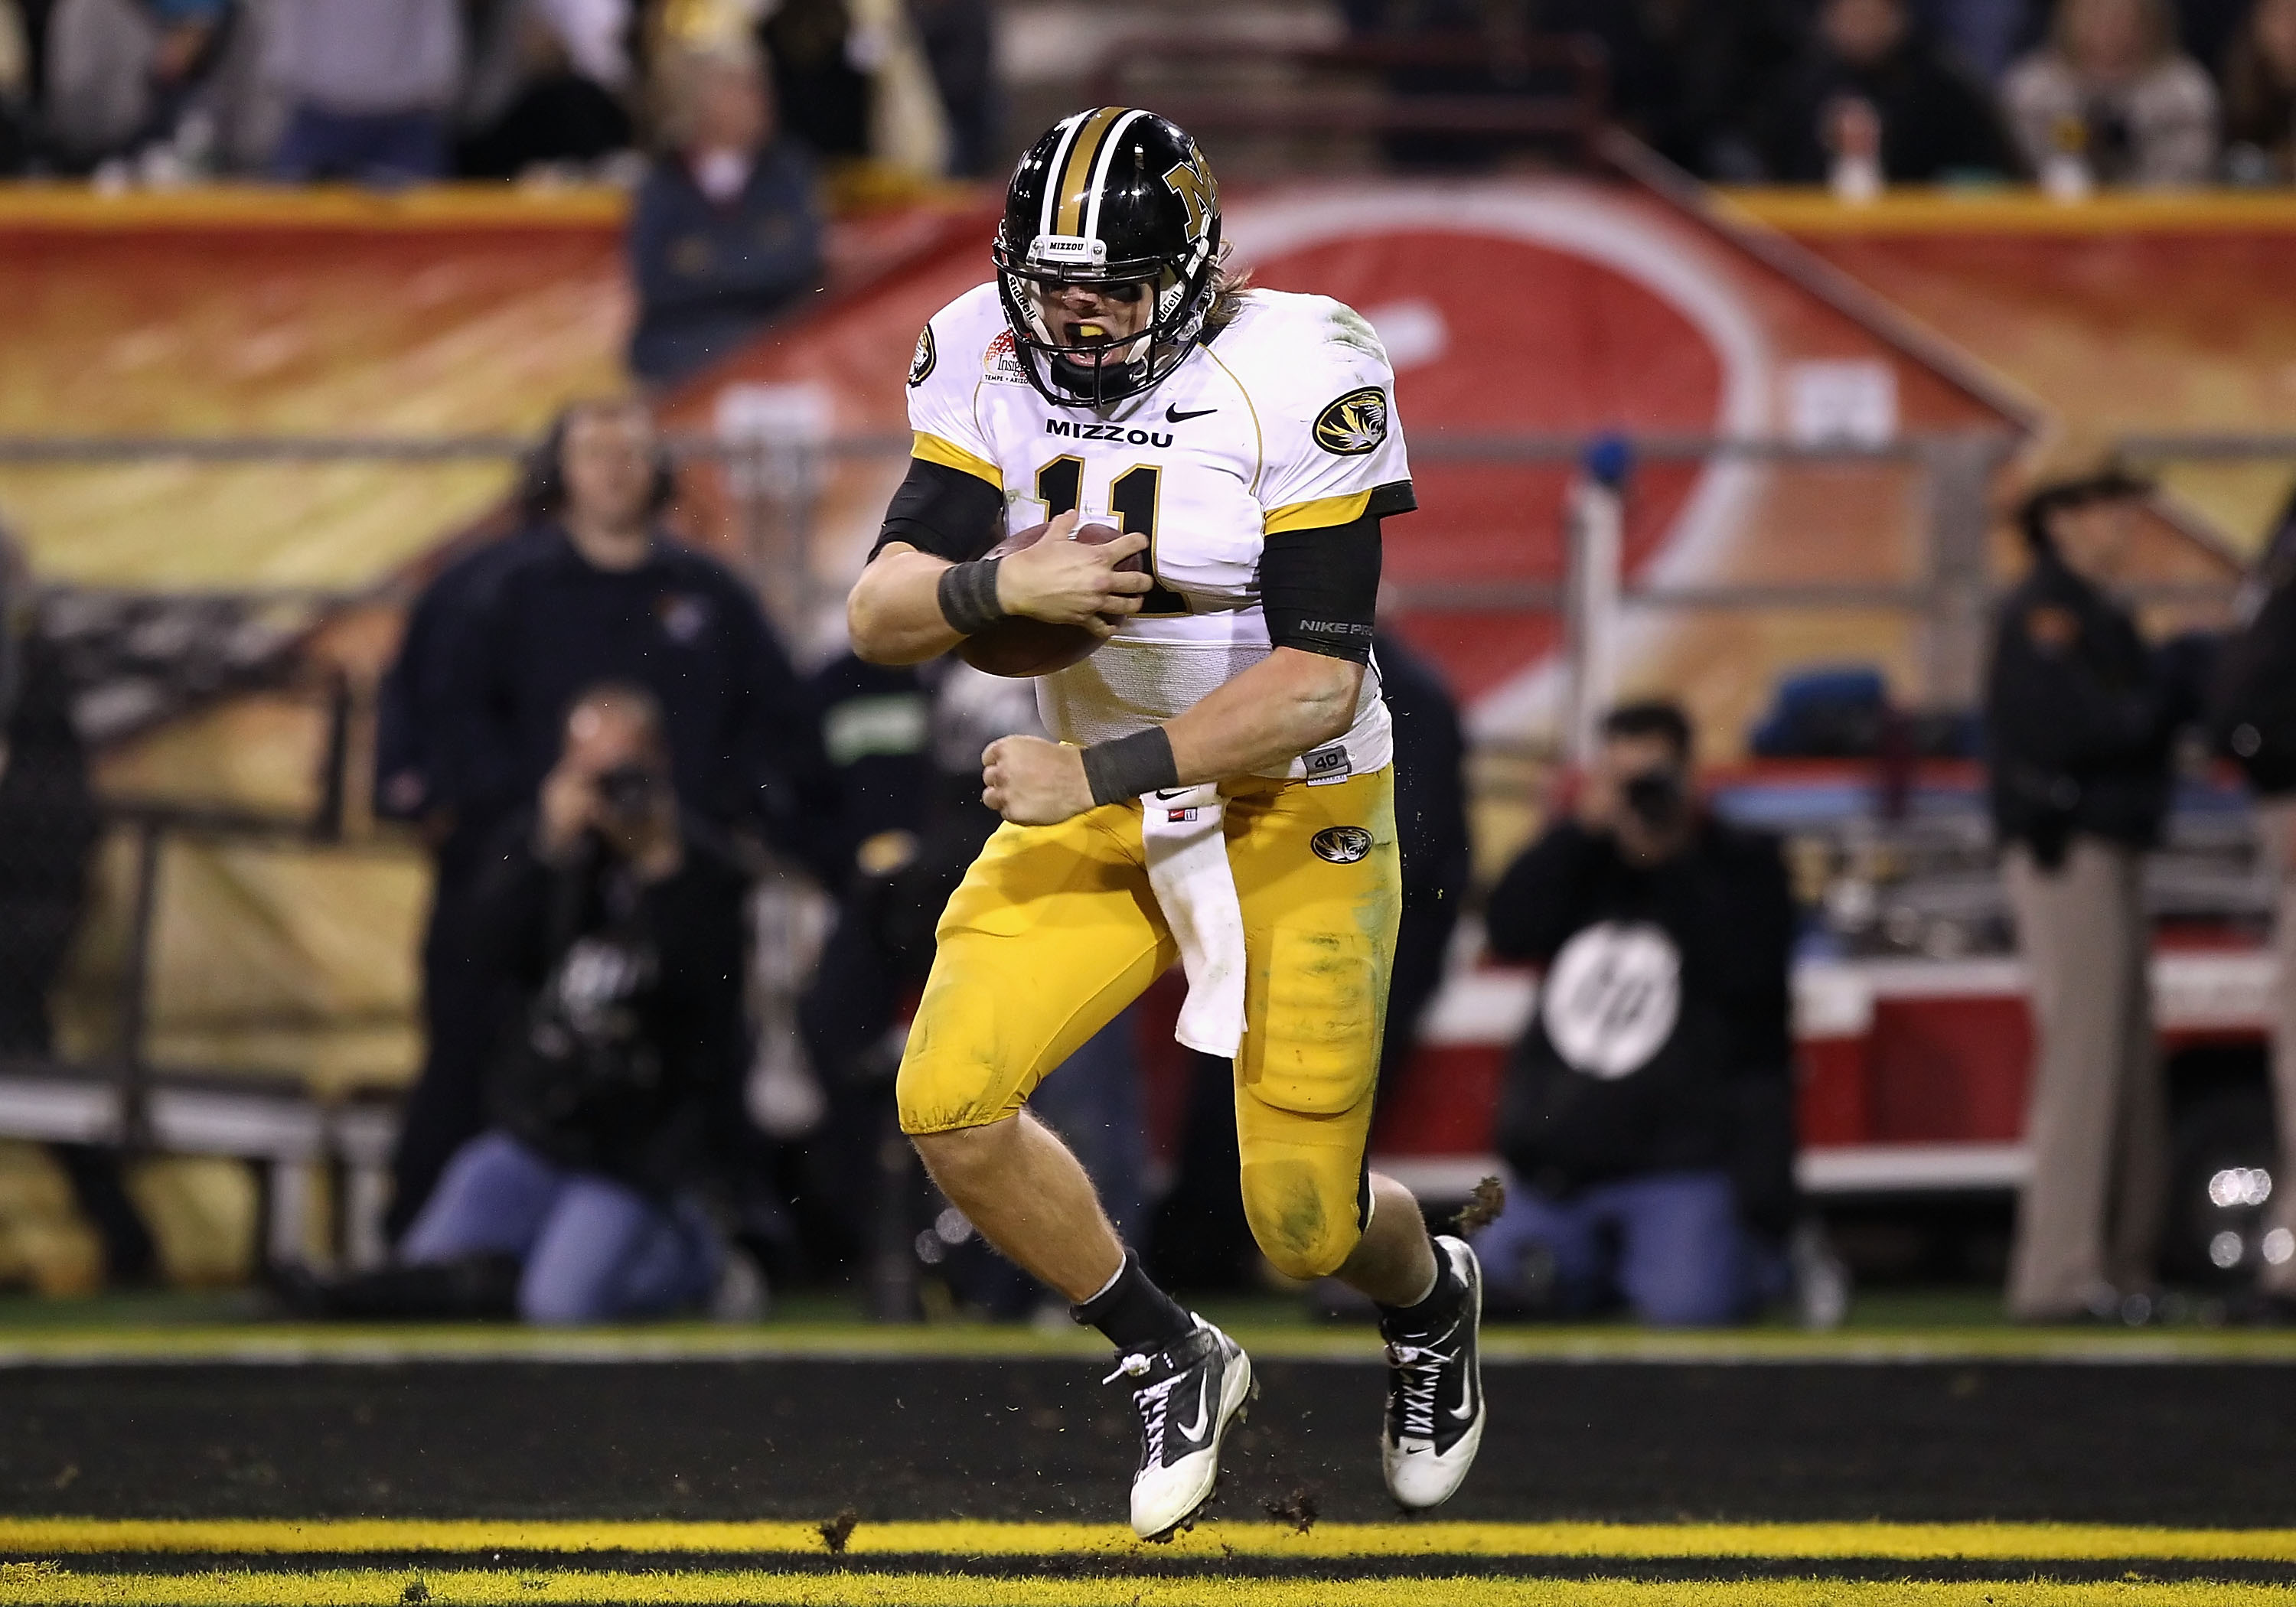 TEMPE, AZ - DECEMBER 28:  Quarterback Blaine Gabbert #11 of the Missouri Tigers celebrates after scoring a 7 yard rushing touchdown against the Iowa Hawkeyes during the third quarter of the Insight Bowl at Sun Devil Stadium on December 28, 2010 in Tempe,